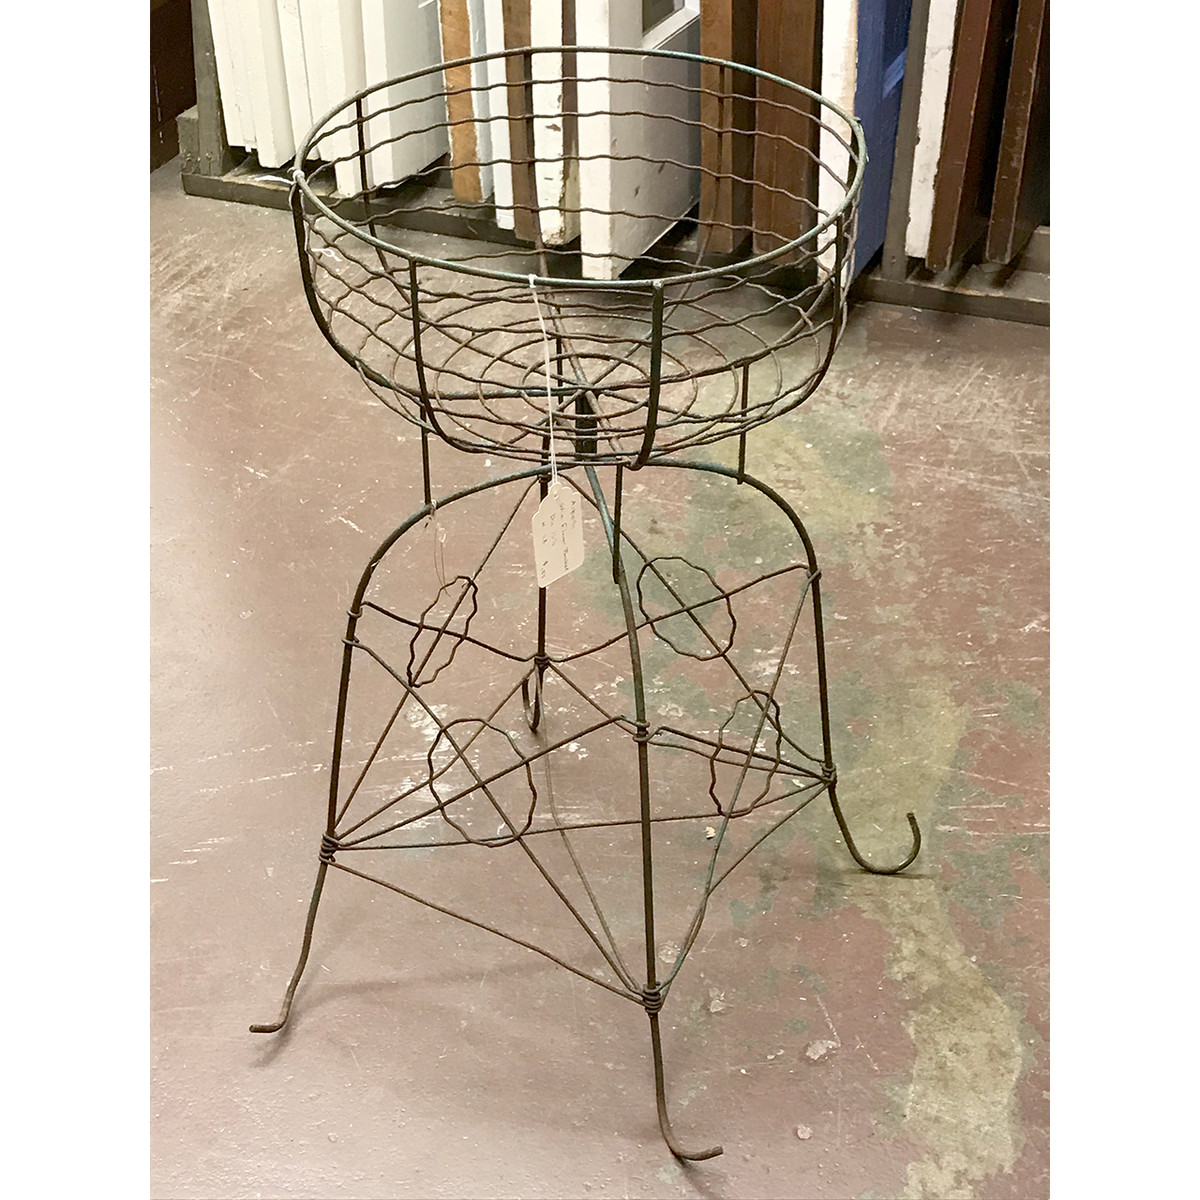 A18091 - Antique Wire Flower Basket